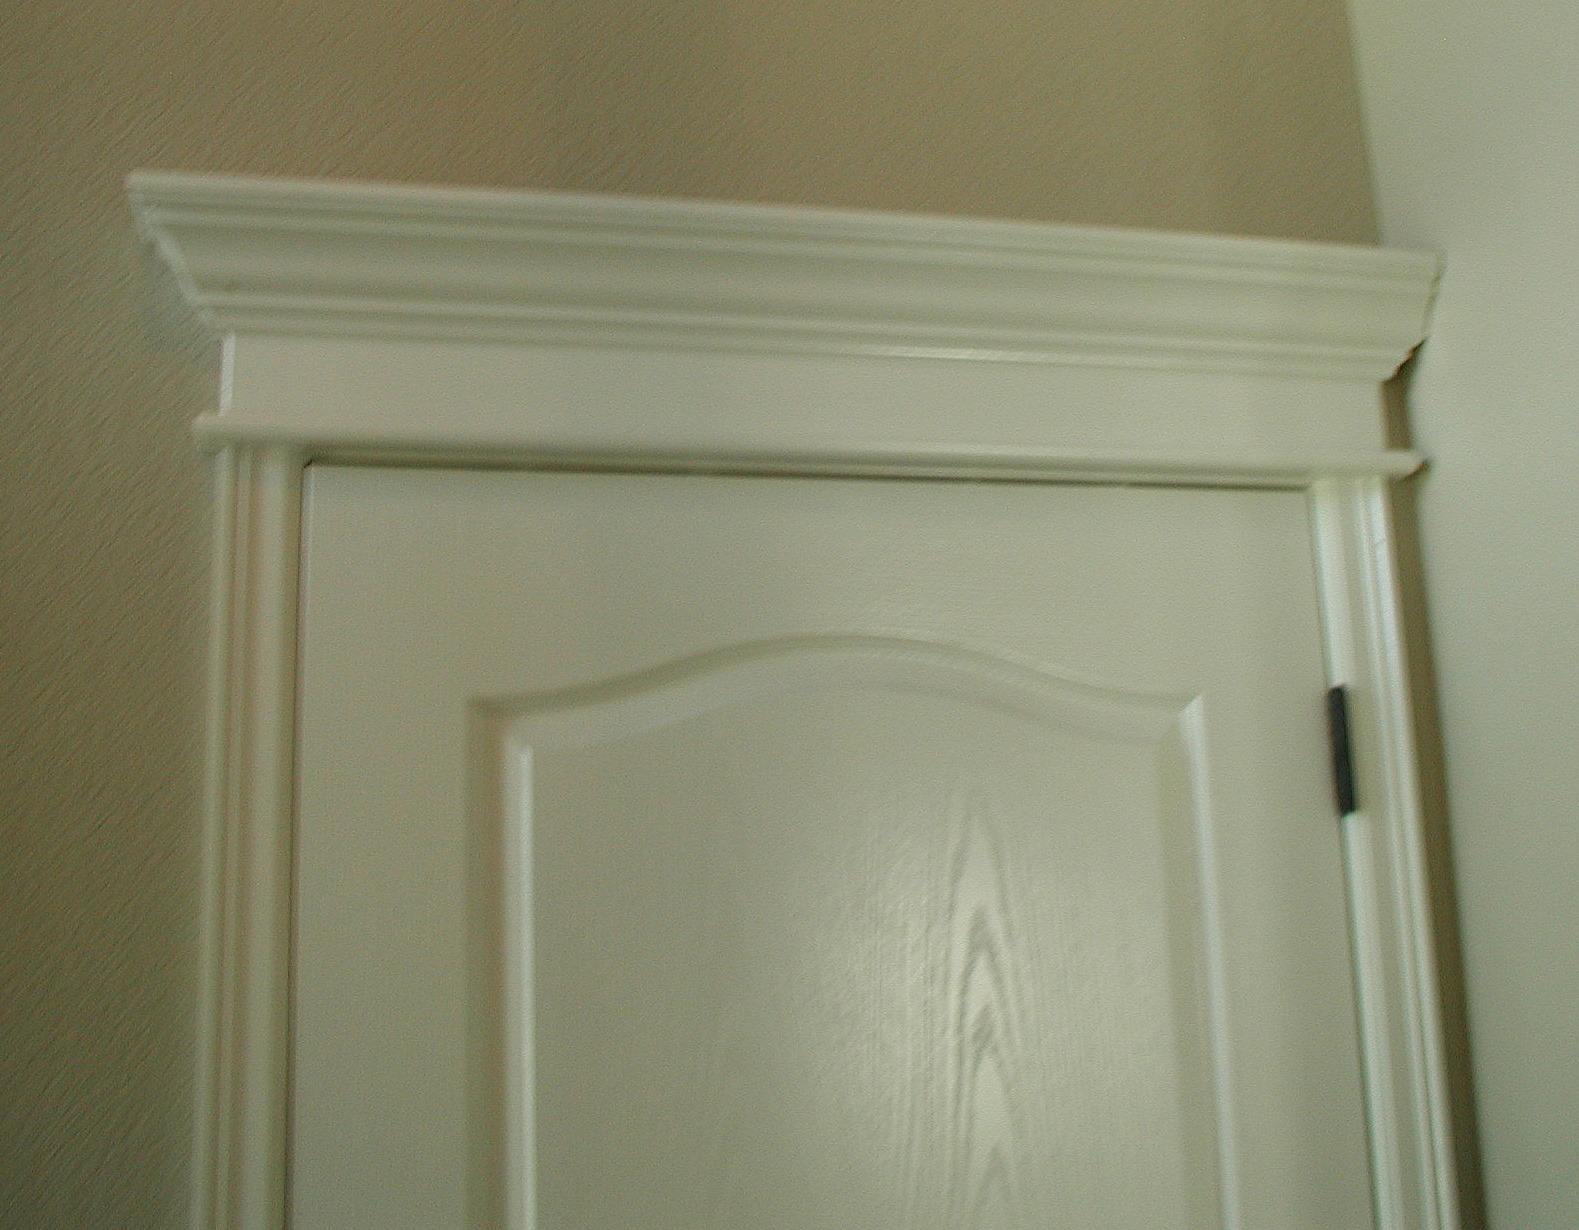 Bathroom Door Lintel Molding